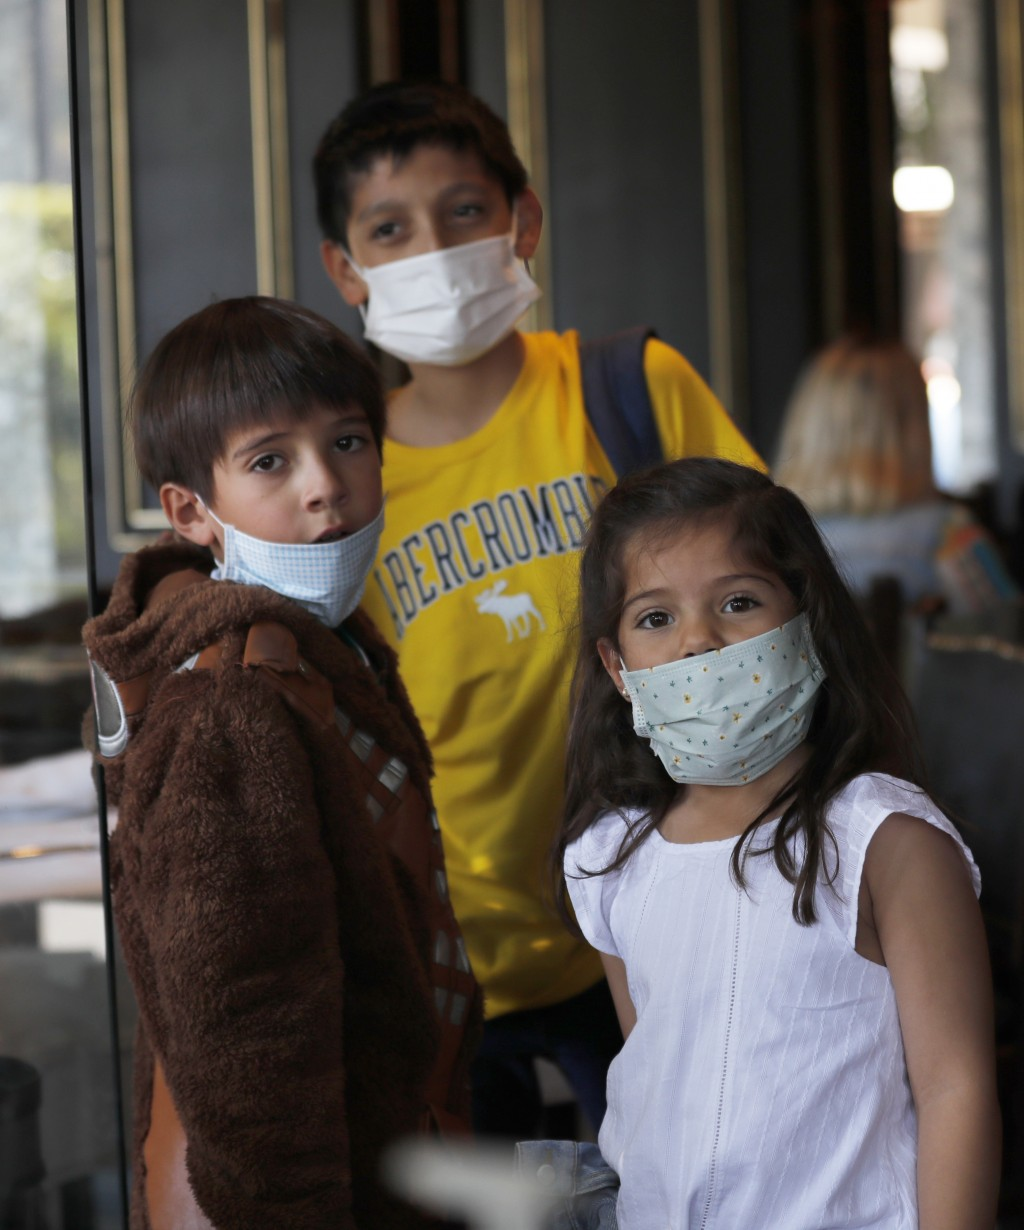 A trio of cousins wear medical masks as a precaution against the spread of the new coronavirus, during an outing to a restaurant in Mexico City, Satur...